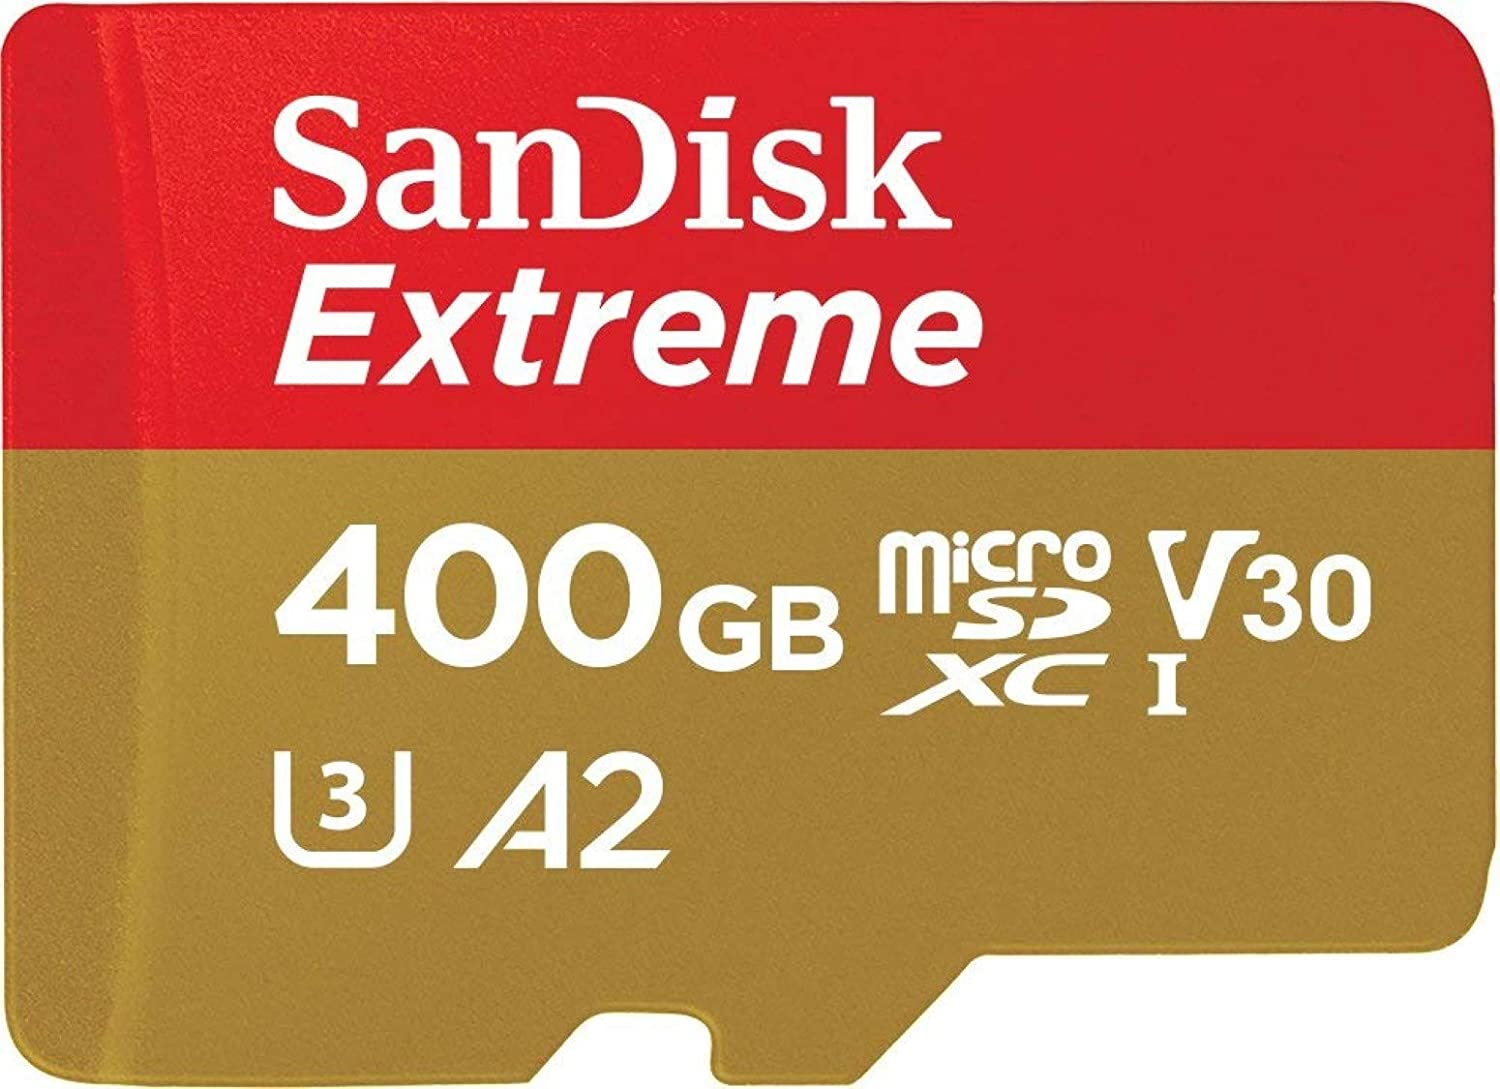 SanDisk Extreme 400 GB microSDXC Memory Card with SanDisk MobileMate USB 3.0 Reader